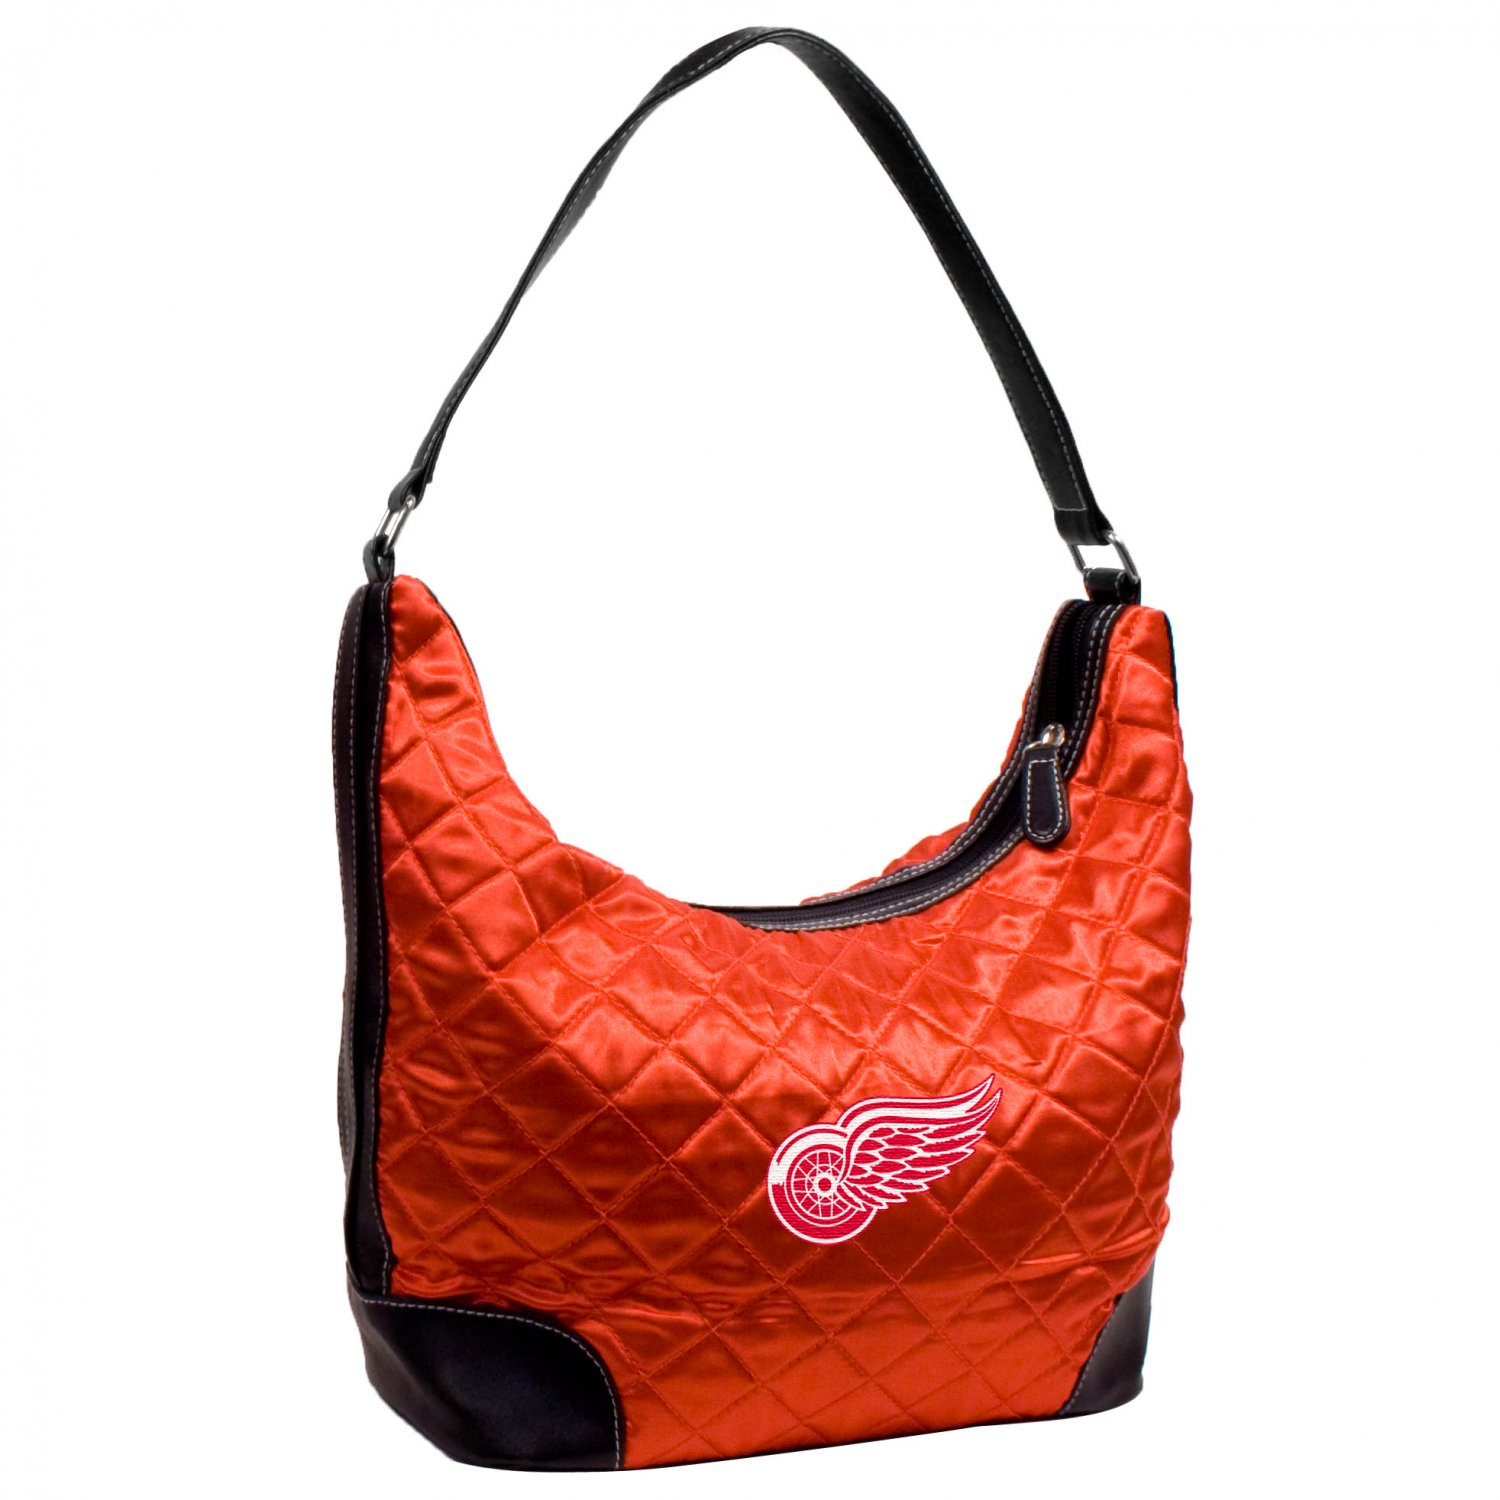 Detroit Red Wings Littlearth Quilted Hobo Bag Purse